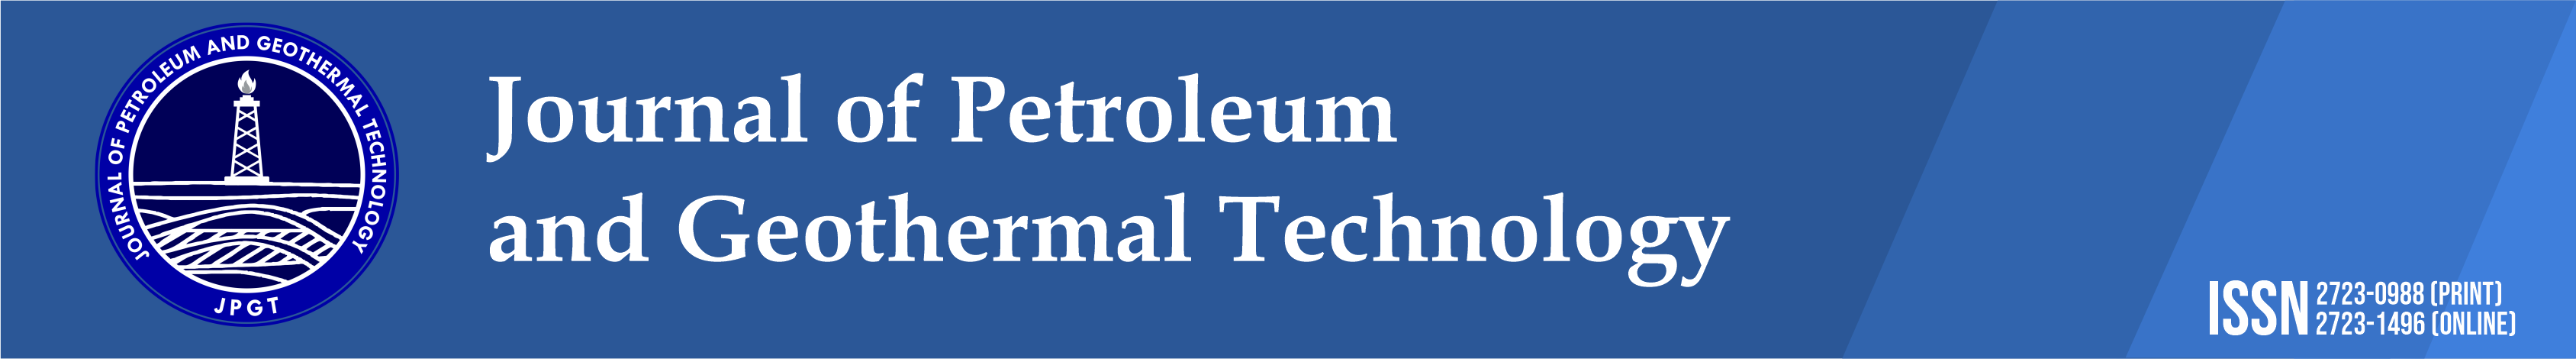 Journal of Petroleum and Geothermal Technology